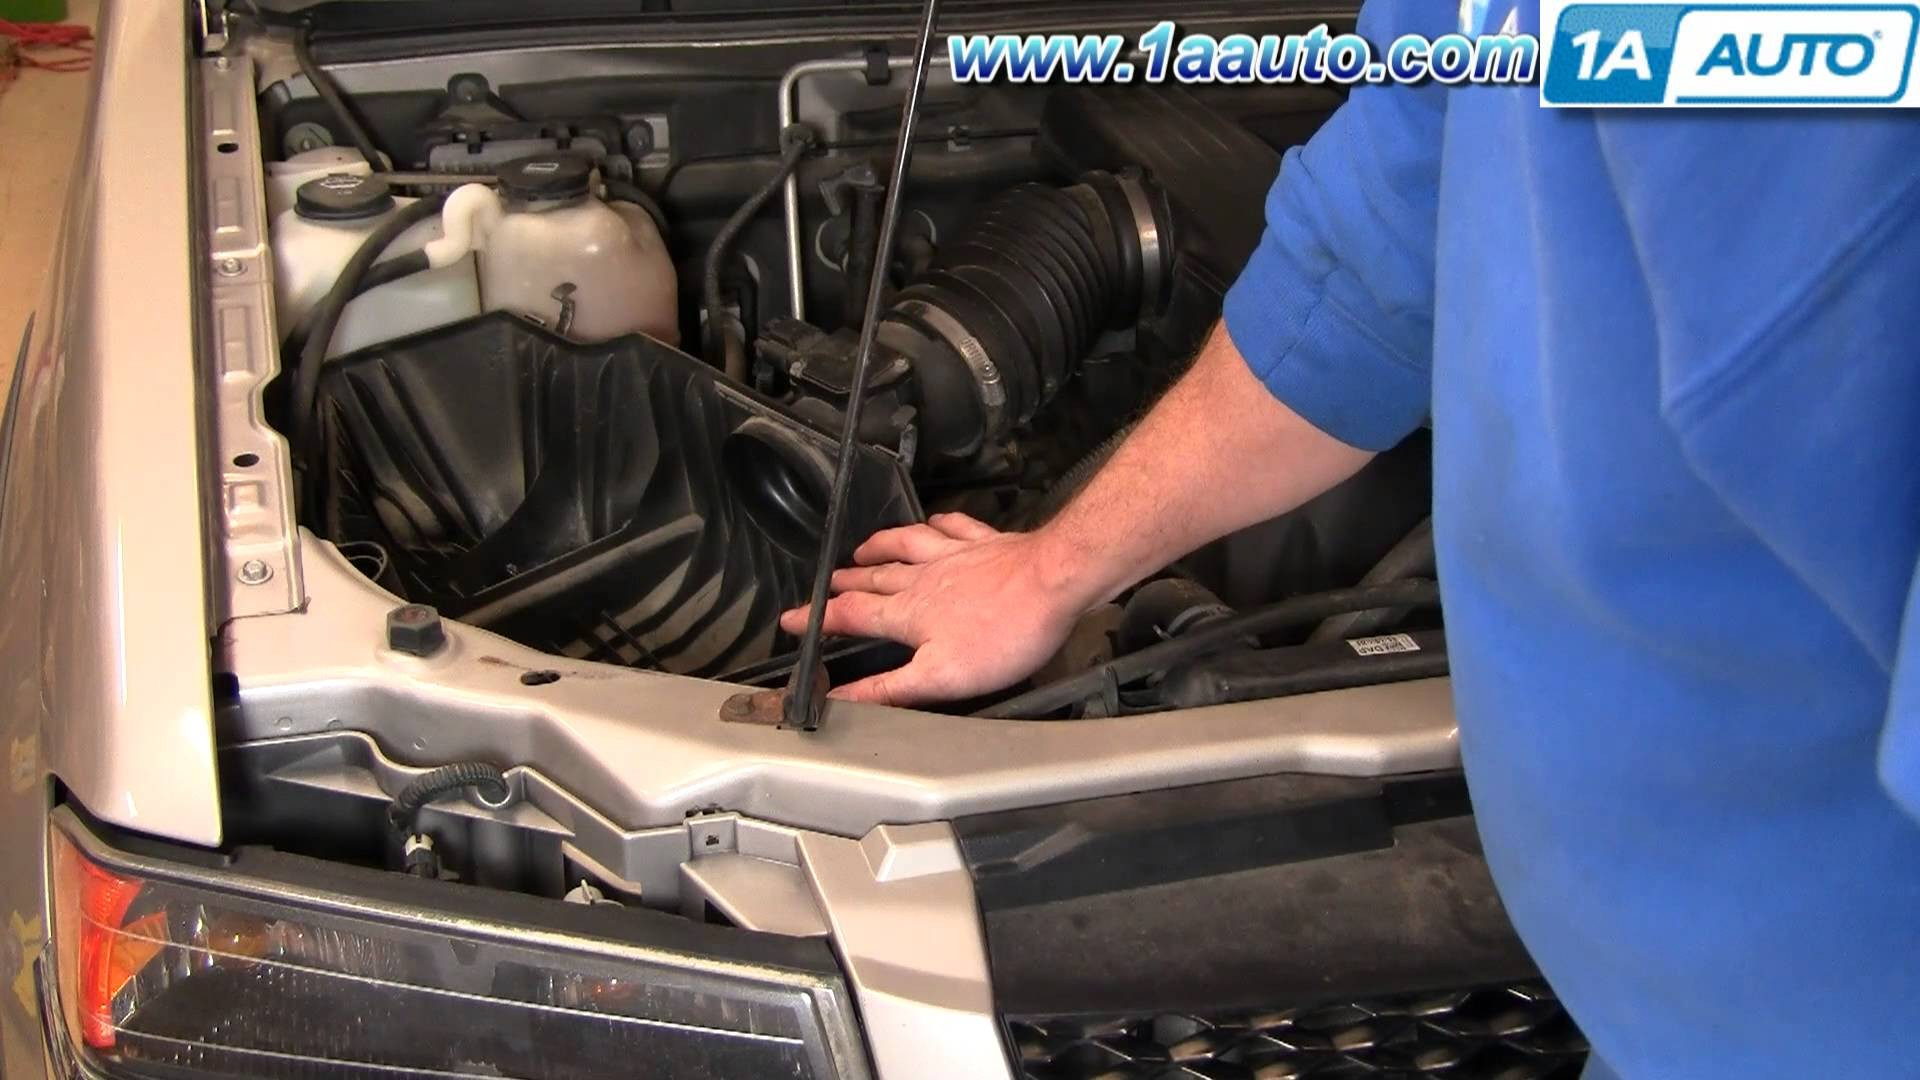 2004 Chevy Colorado Parts Diagram How to Install Replace Engine Air Filter Chevy Colorado 04 12 1aauto Of 2004 Chevy Colorado Parts Diagram